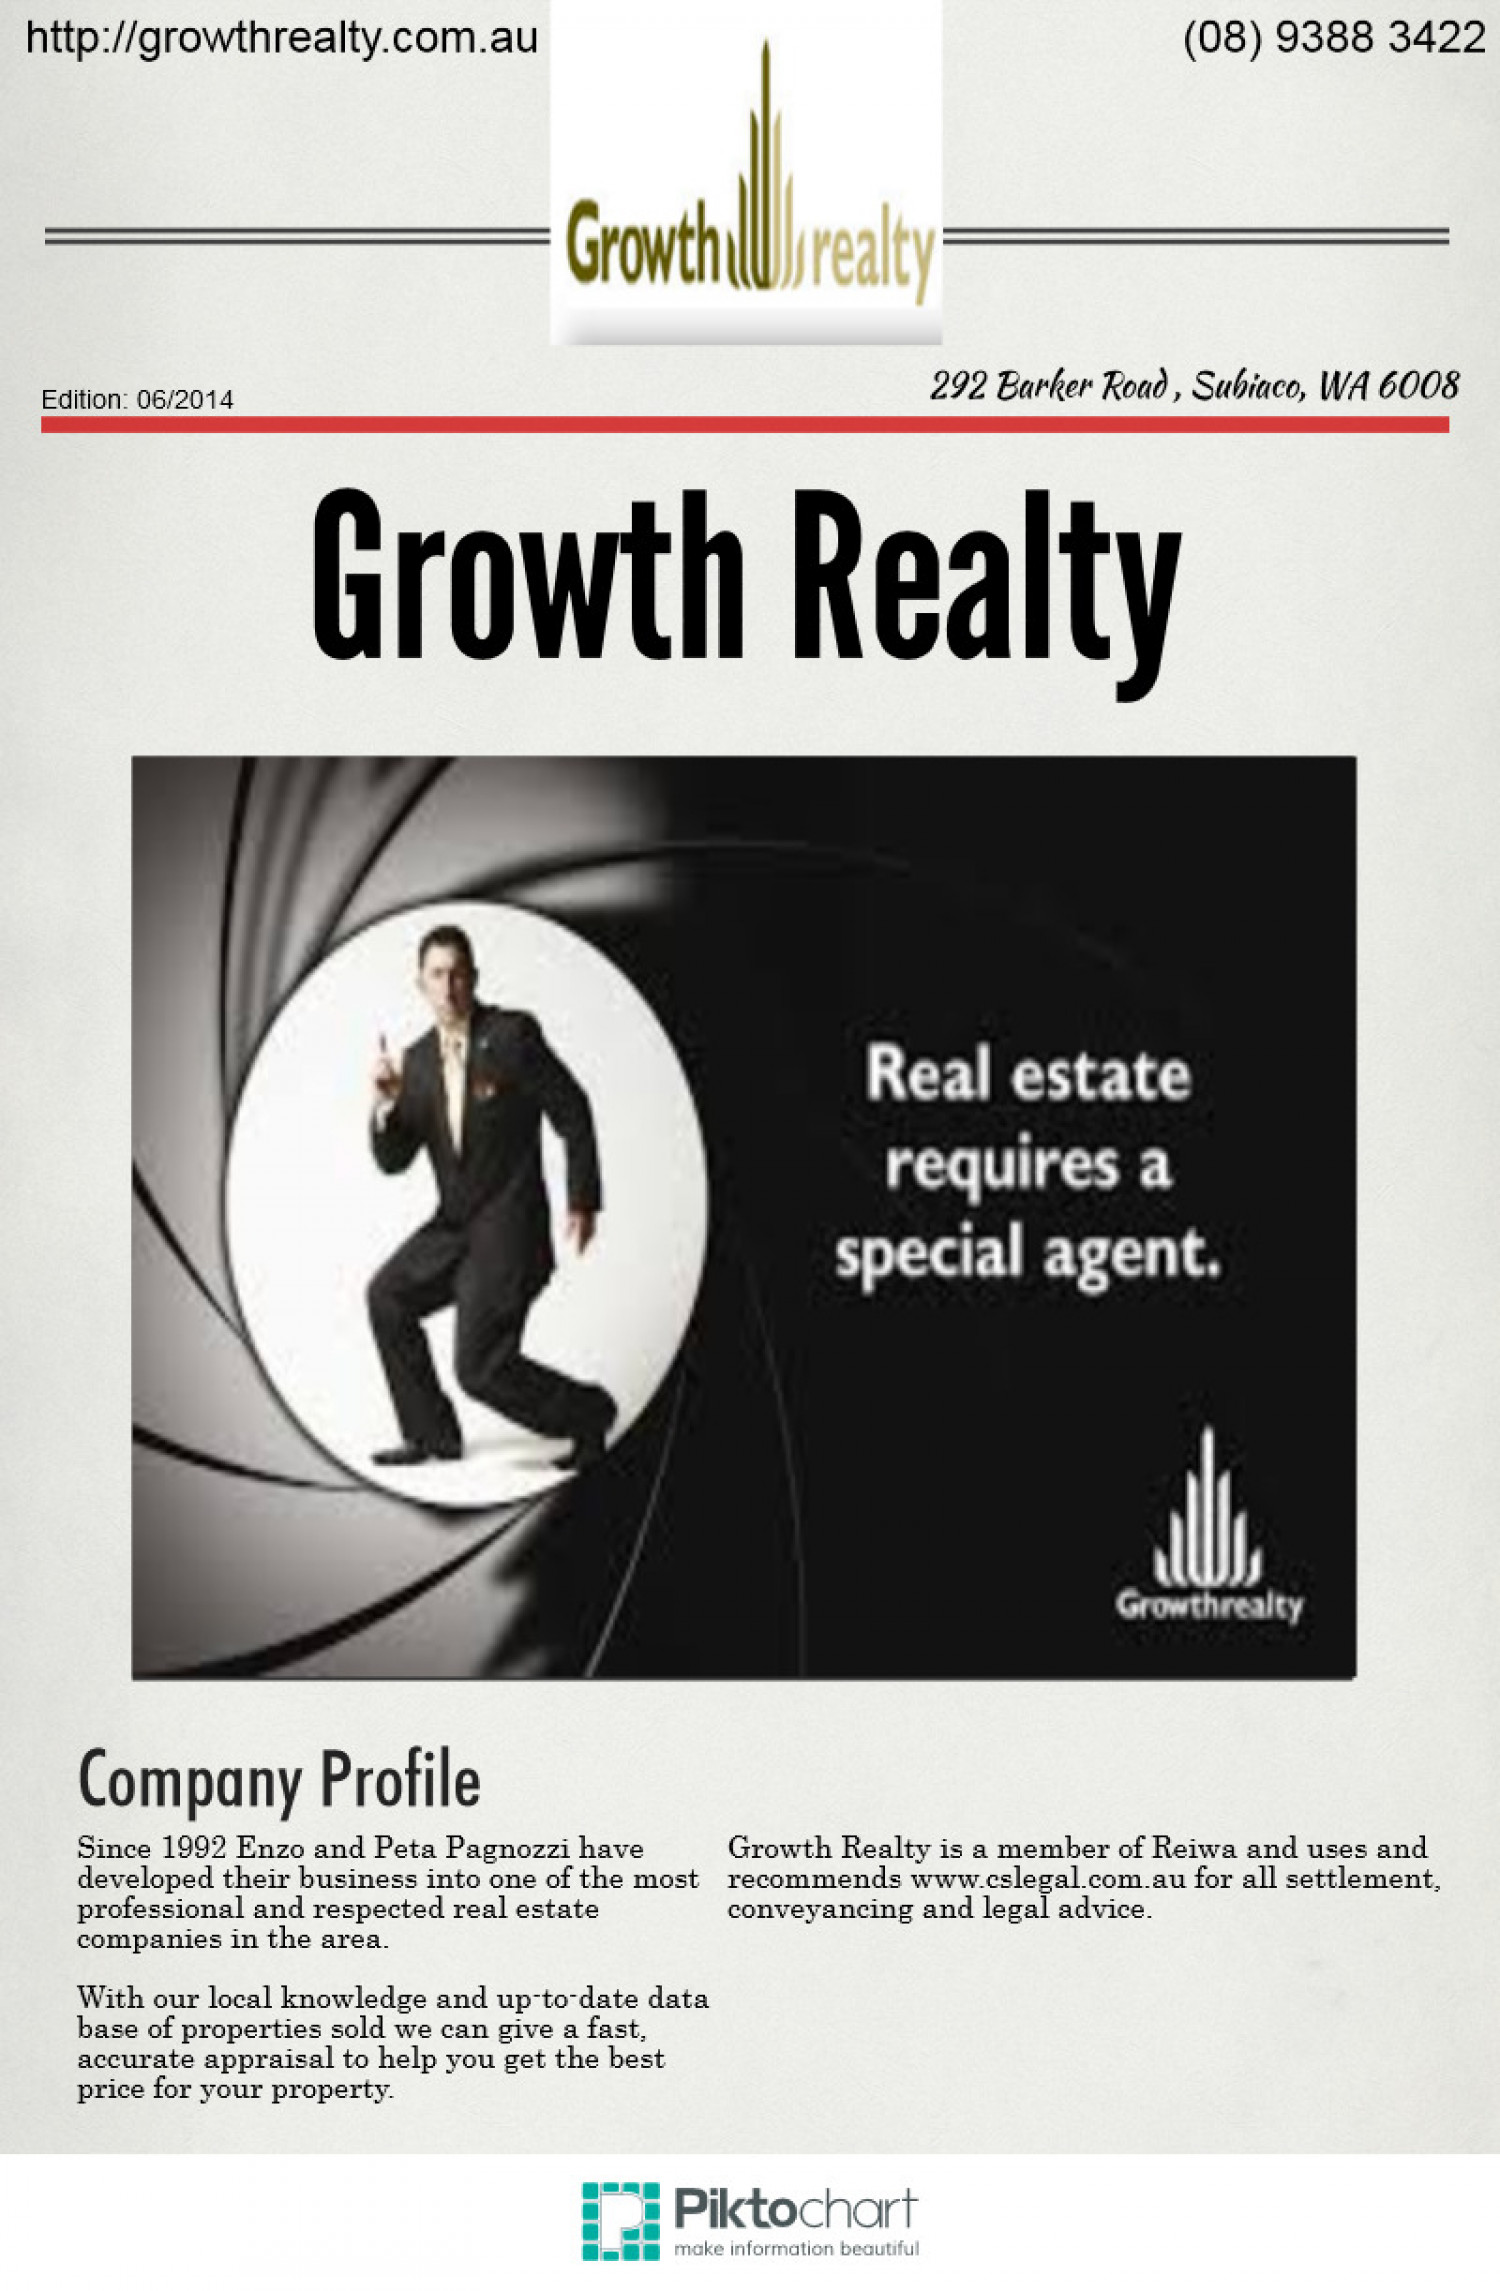 Growth Realty - Home for Sale Infographic